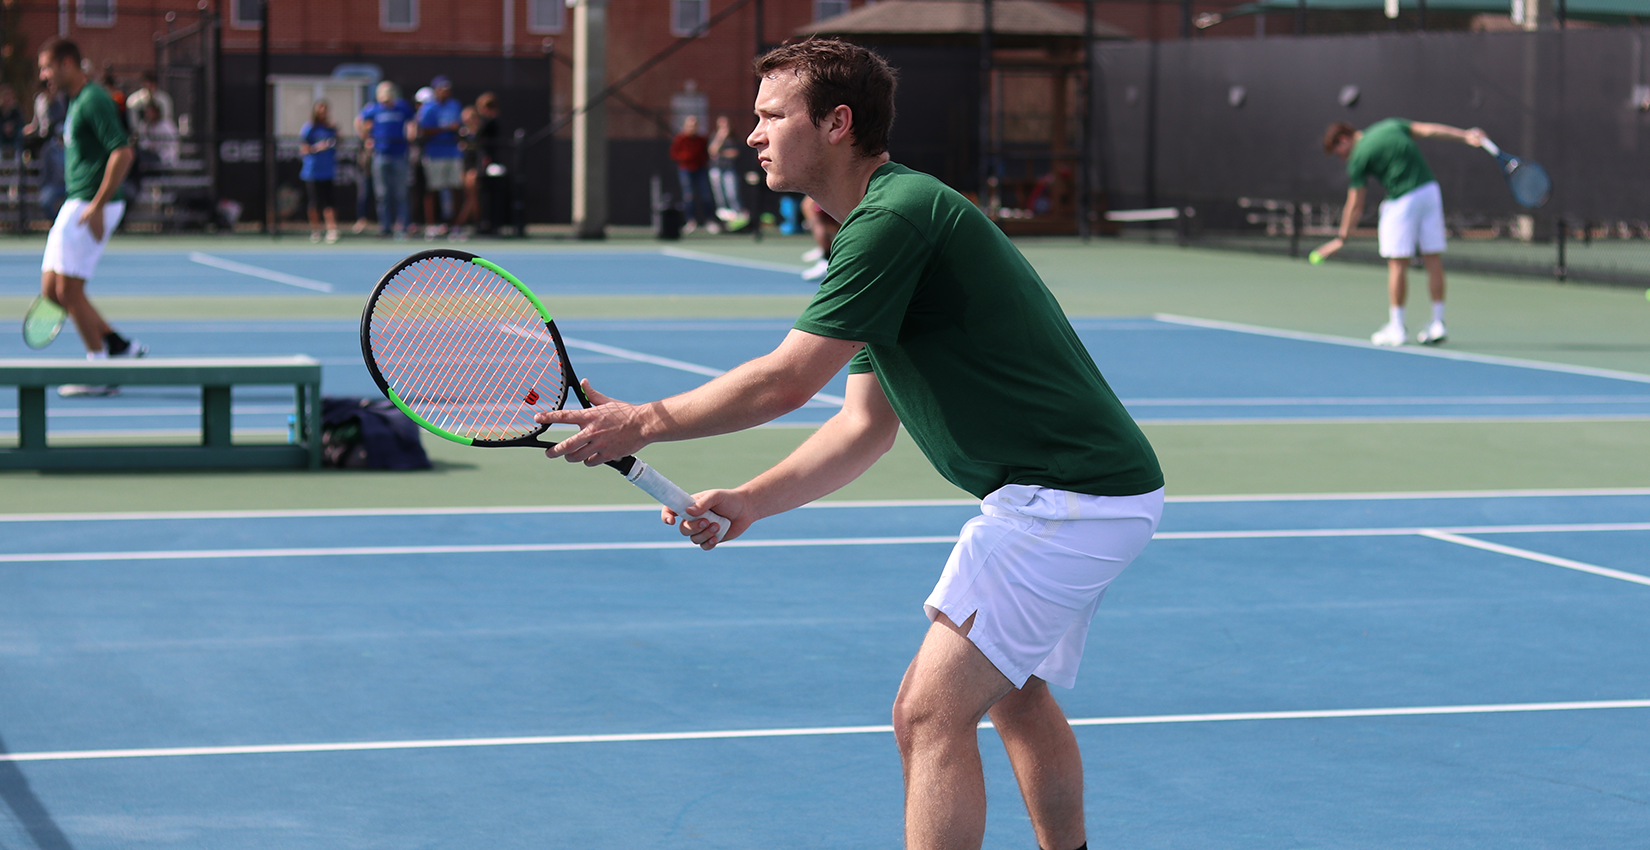 #23 Bobcat Men's Tennis Blanks Morehouse in Home Opener, 7-0